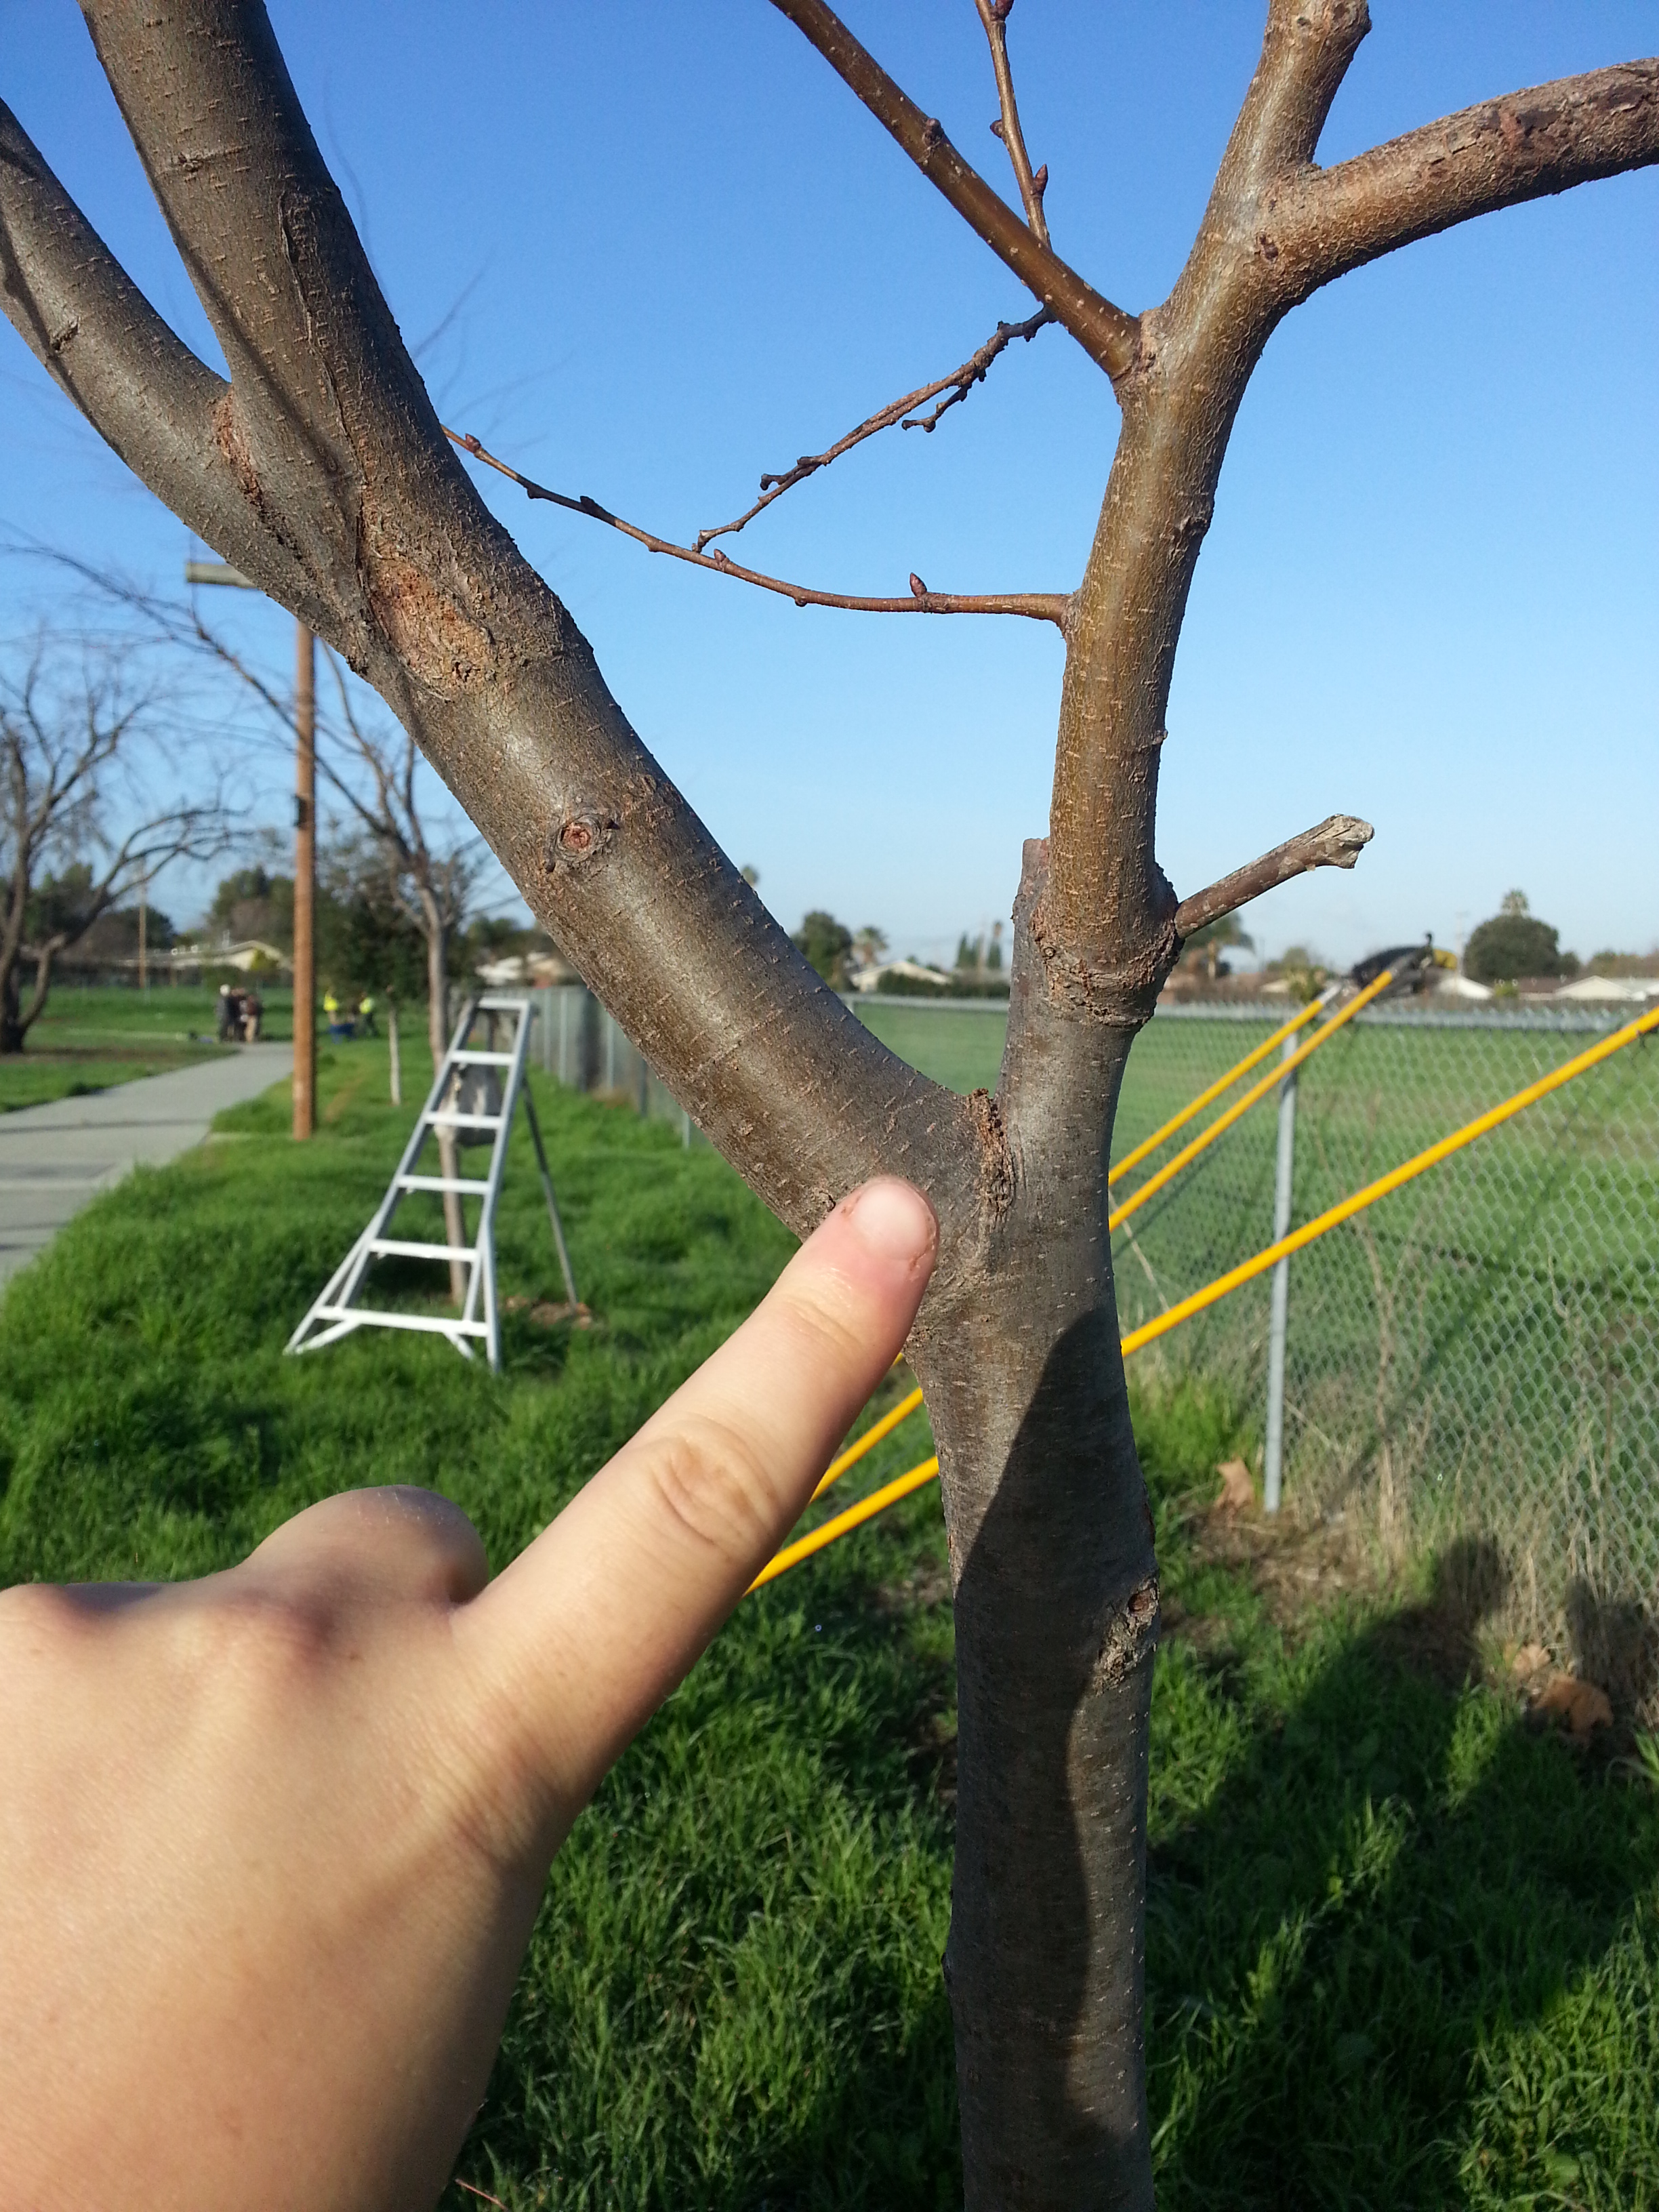 Branches lower than the lowest permanent branch that exceed 1/3 of the trunk's width should be removed.